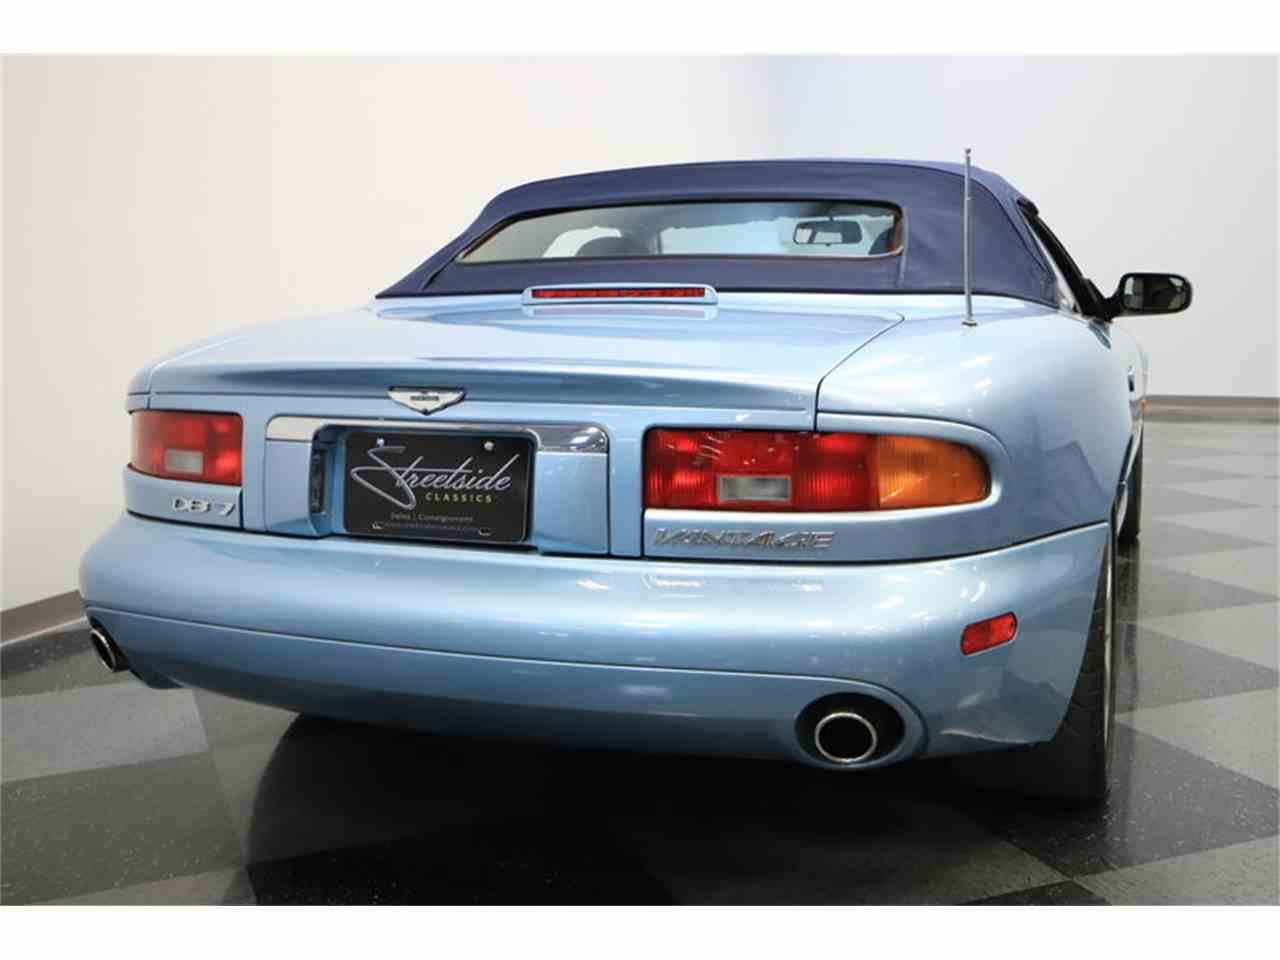 Large Picture of 2000 Aston Martin DB7 Vantage Volante located in Arizona - $39,995.00 - M73B